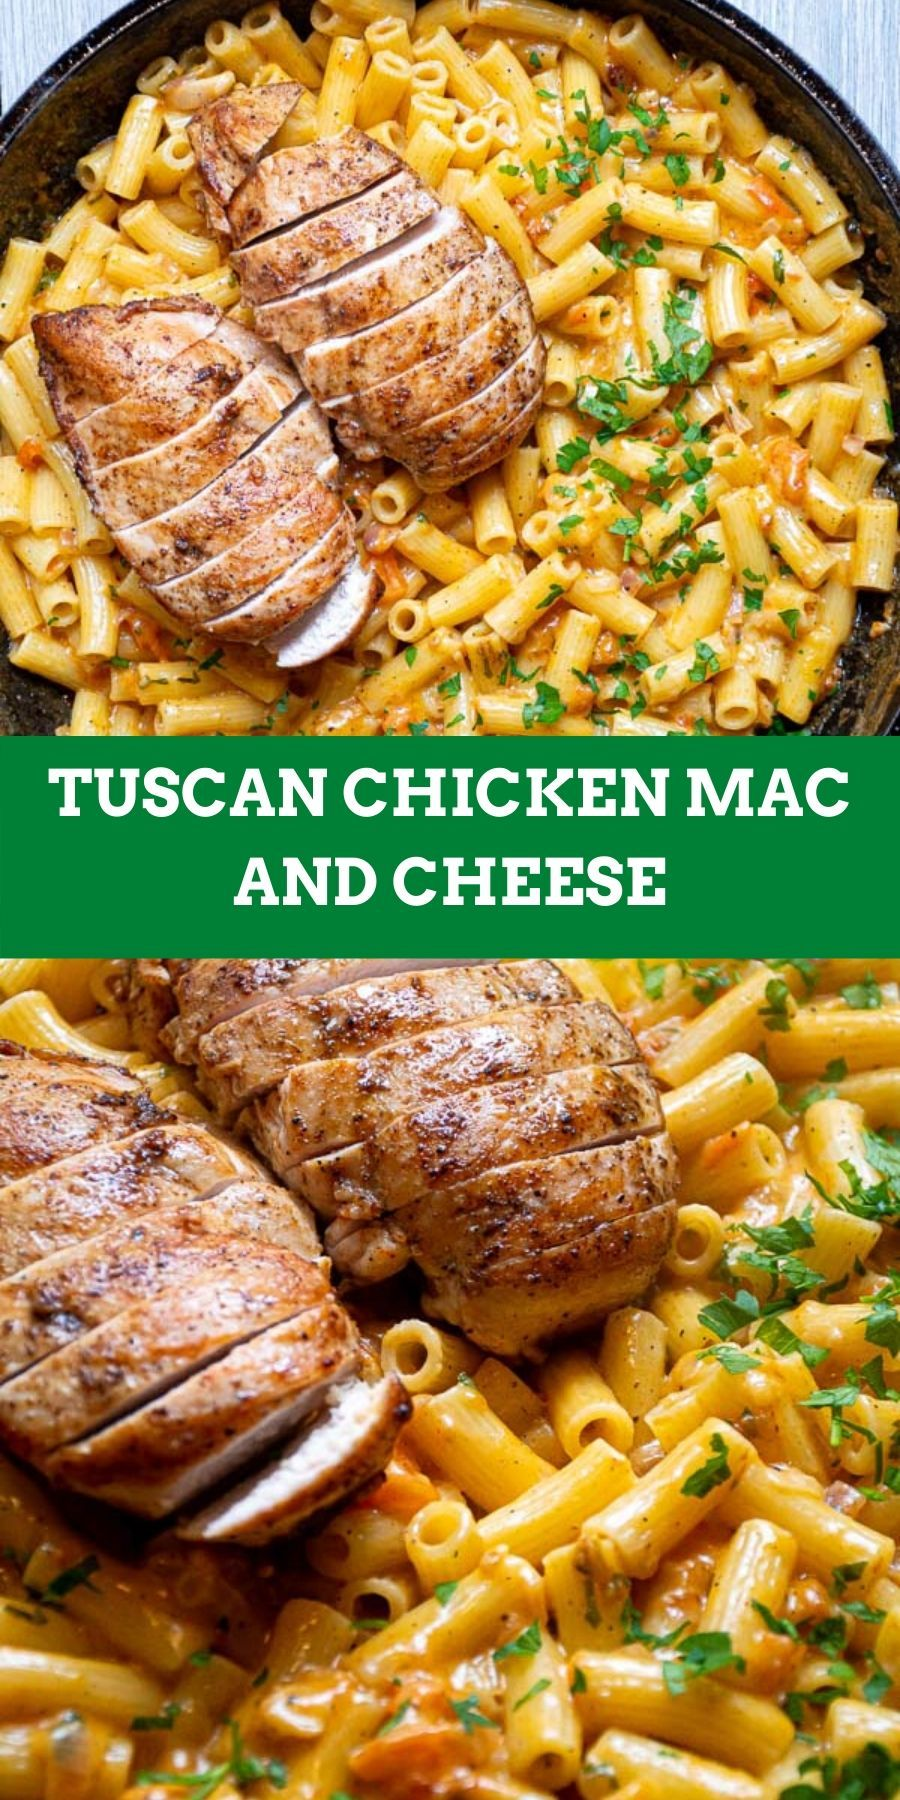 Easy TUSCAN CHICKEN MAC AND CHEESE (SUPER CREAMY)